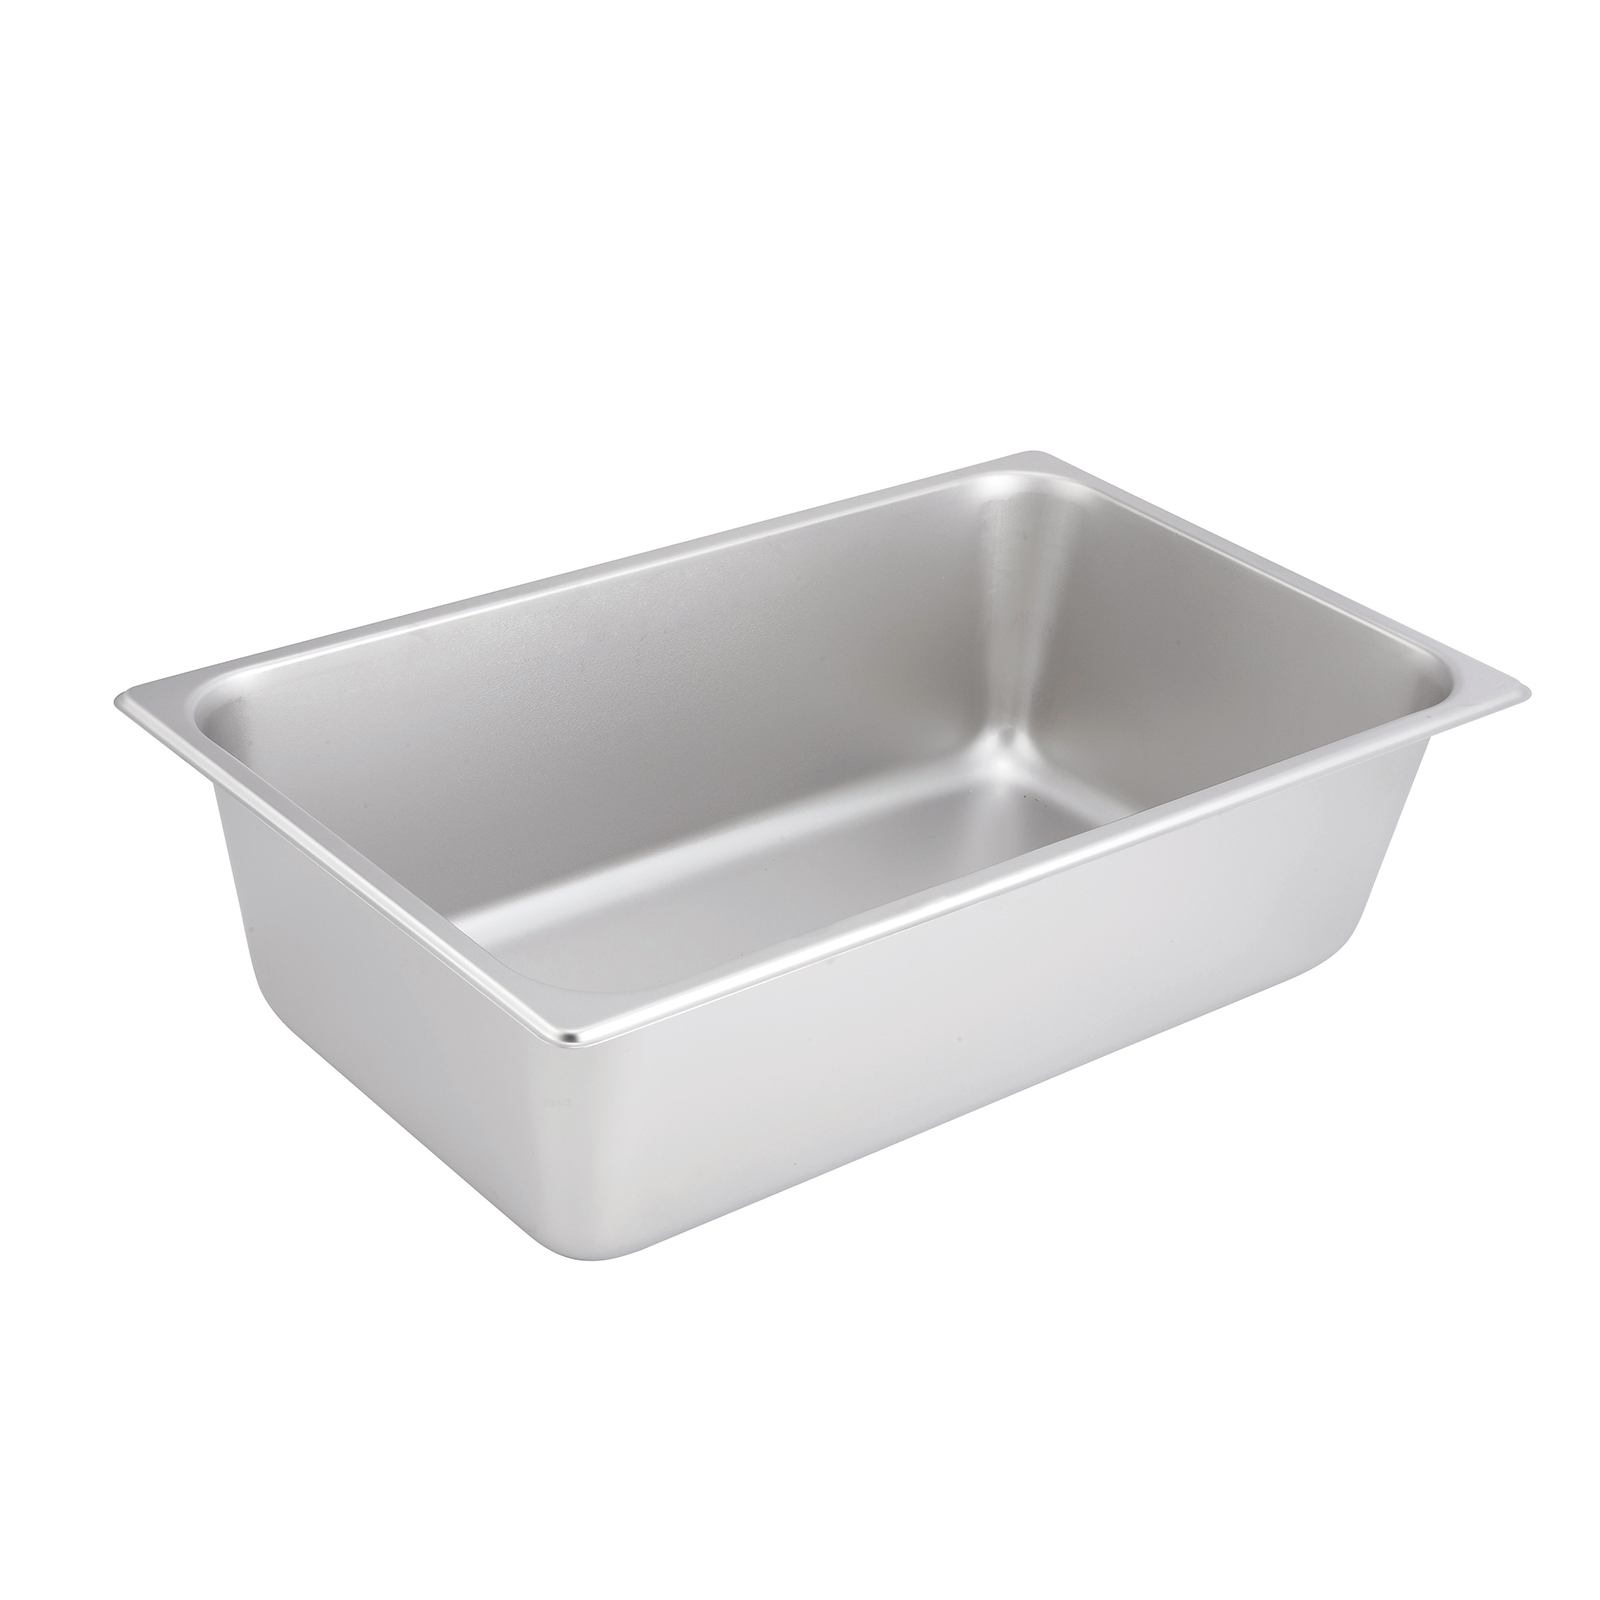 Winco SPF6 steam table pan, stainless steel